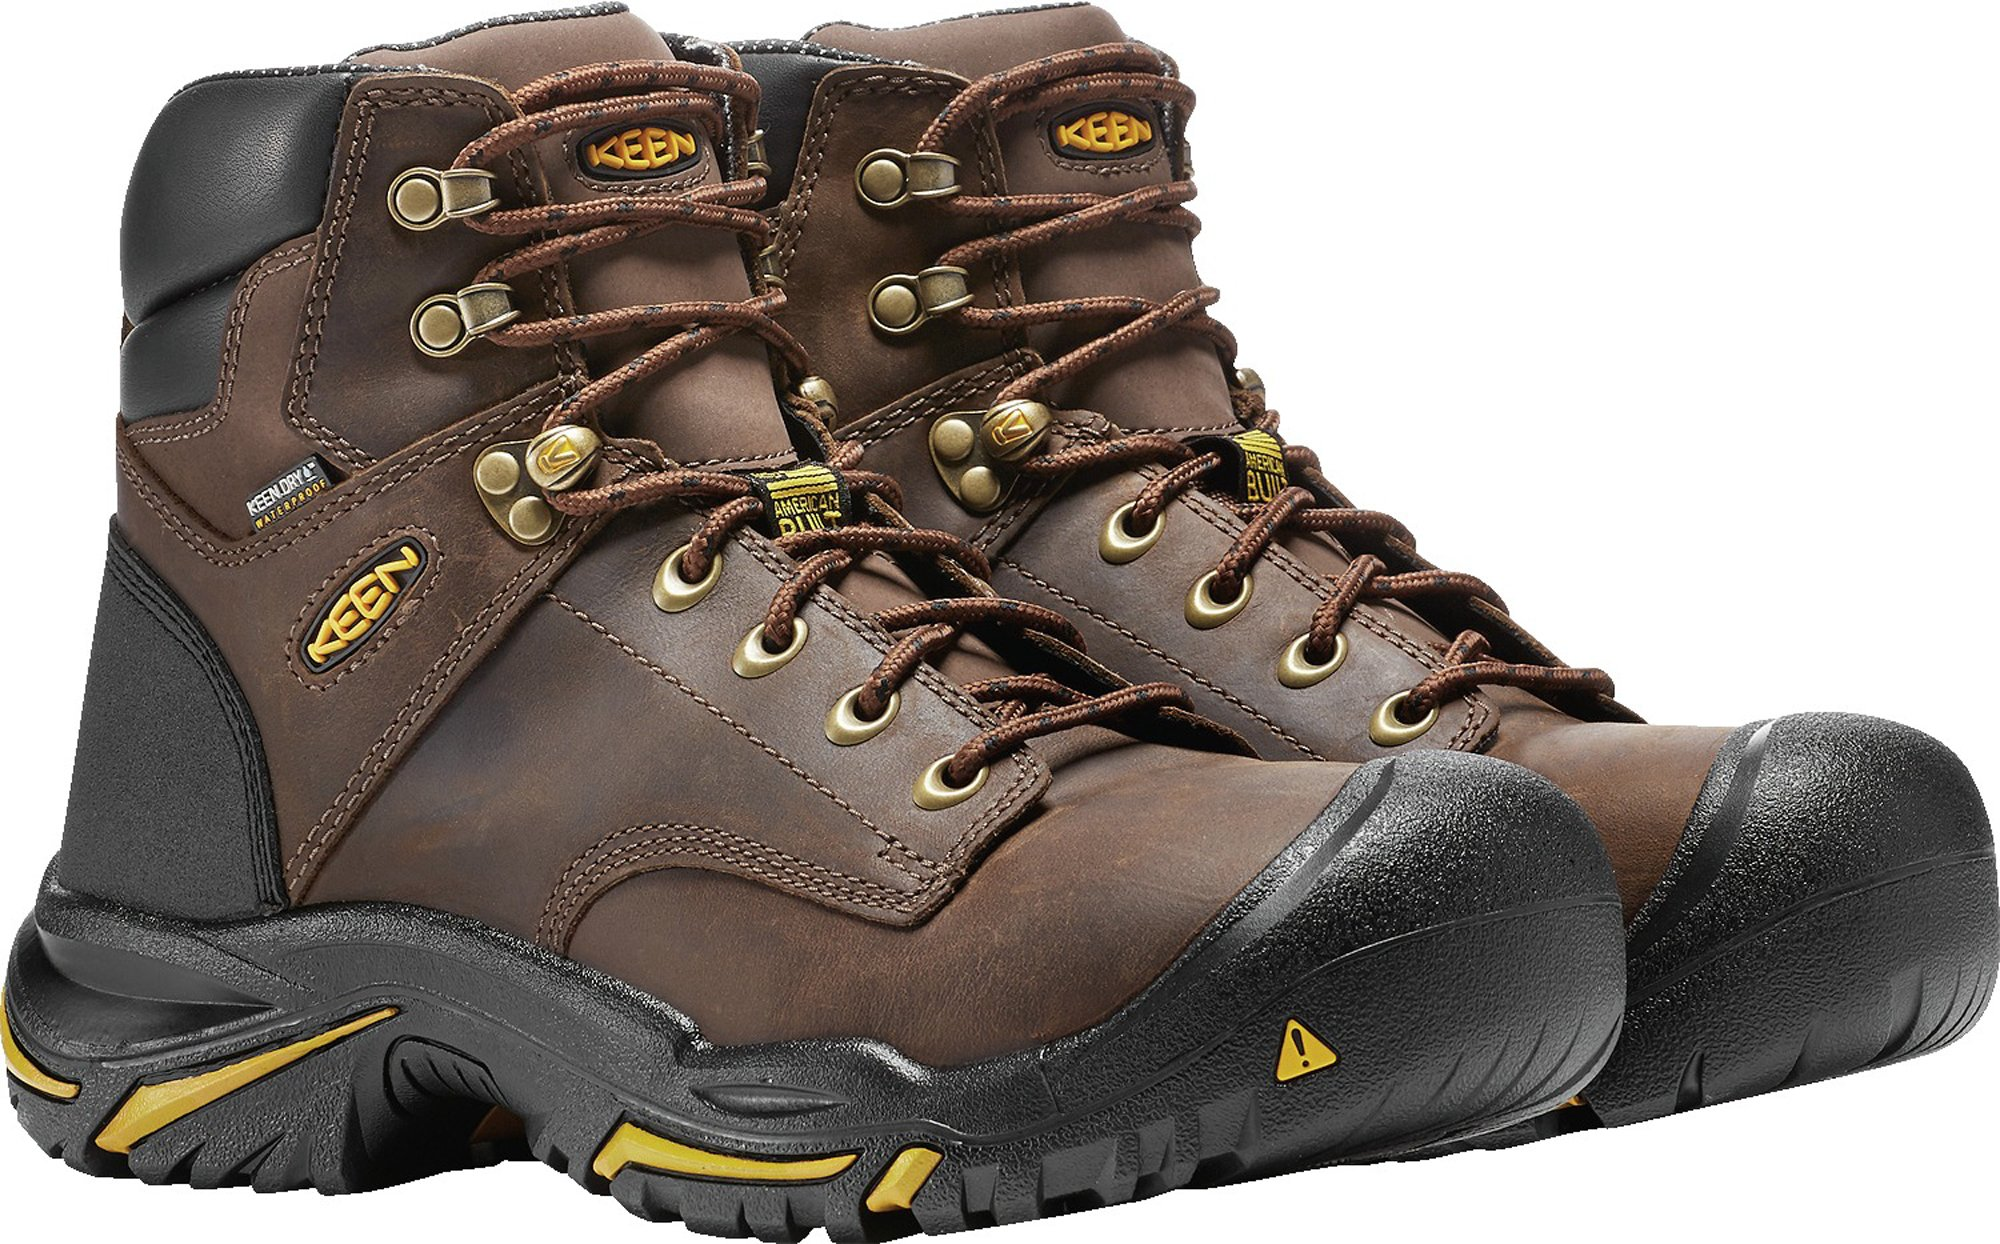 KEEN Utility MT Vernon 6'' Waterproof (Steel Toe), Men's Work Boot, Cascade Brown, 15 EE by KEEN Utility (Image #9)